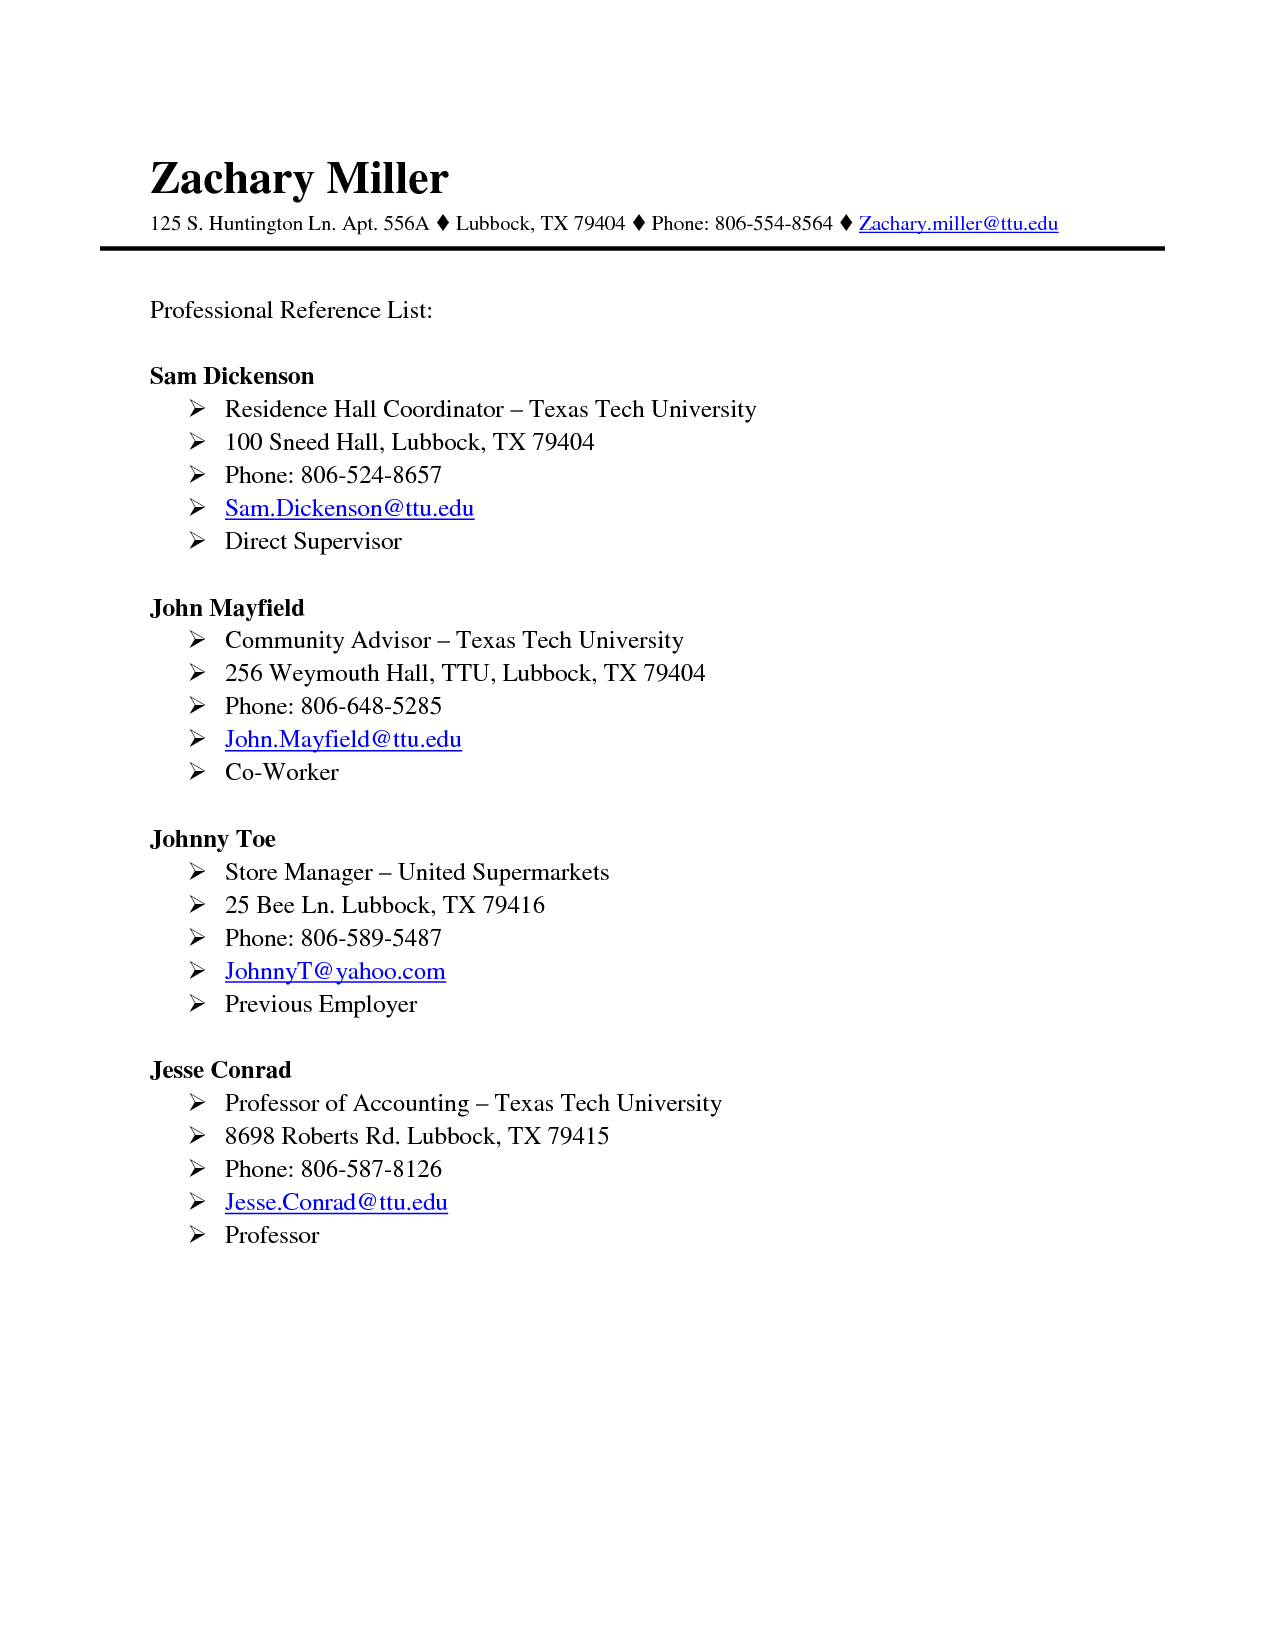 Refrence Template inventory list template reference letter for job – Reference Templates